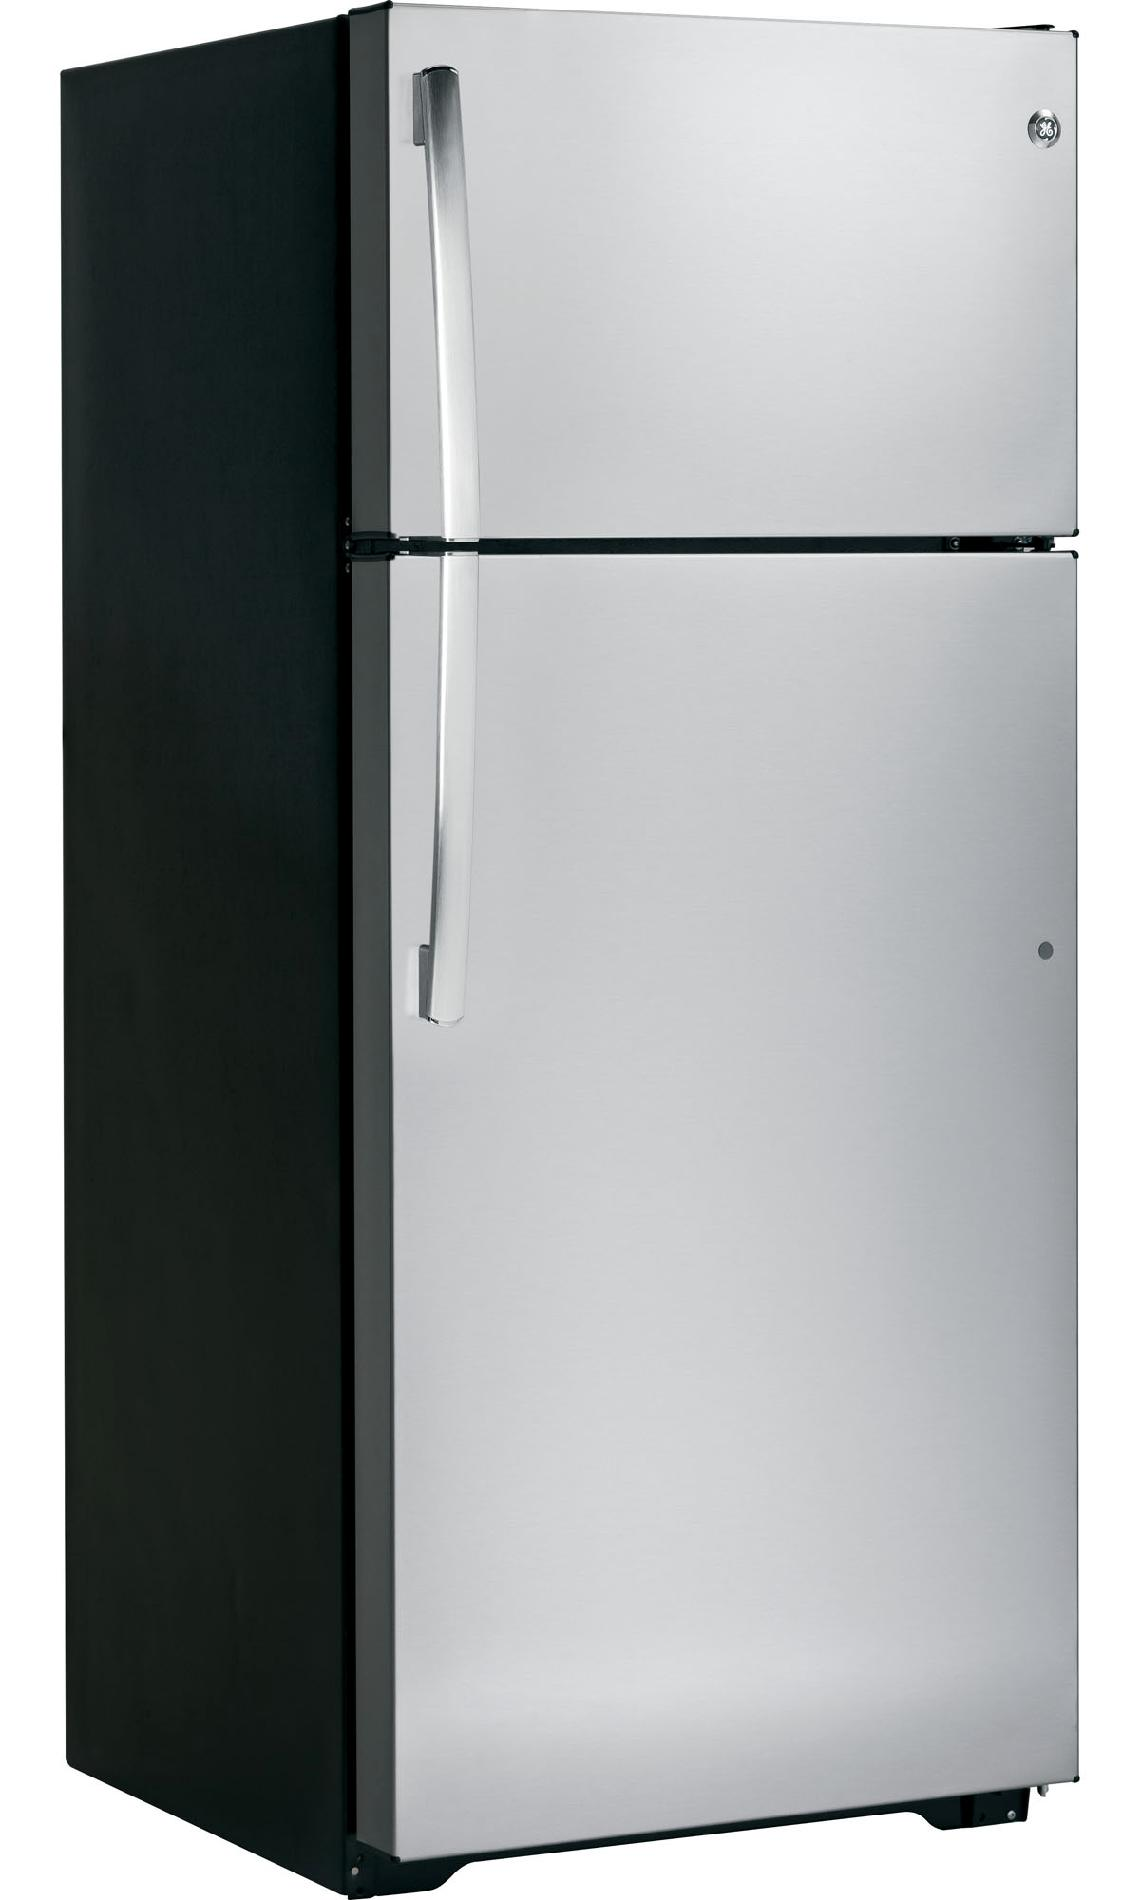 GE 18.1 cu. ft. Top-Freezer Refrigerator - Stainless Steel